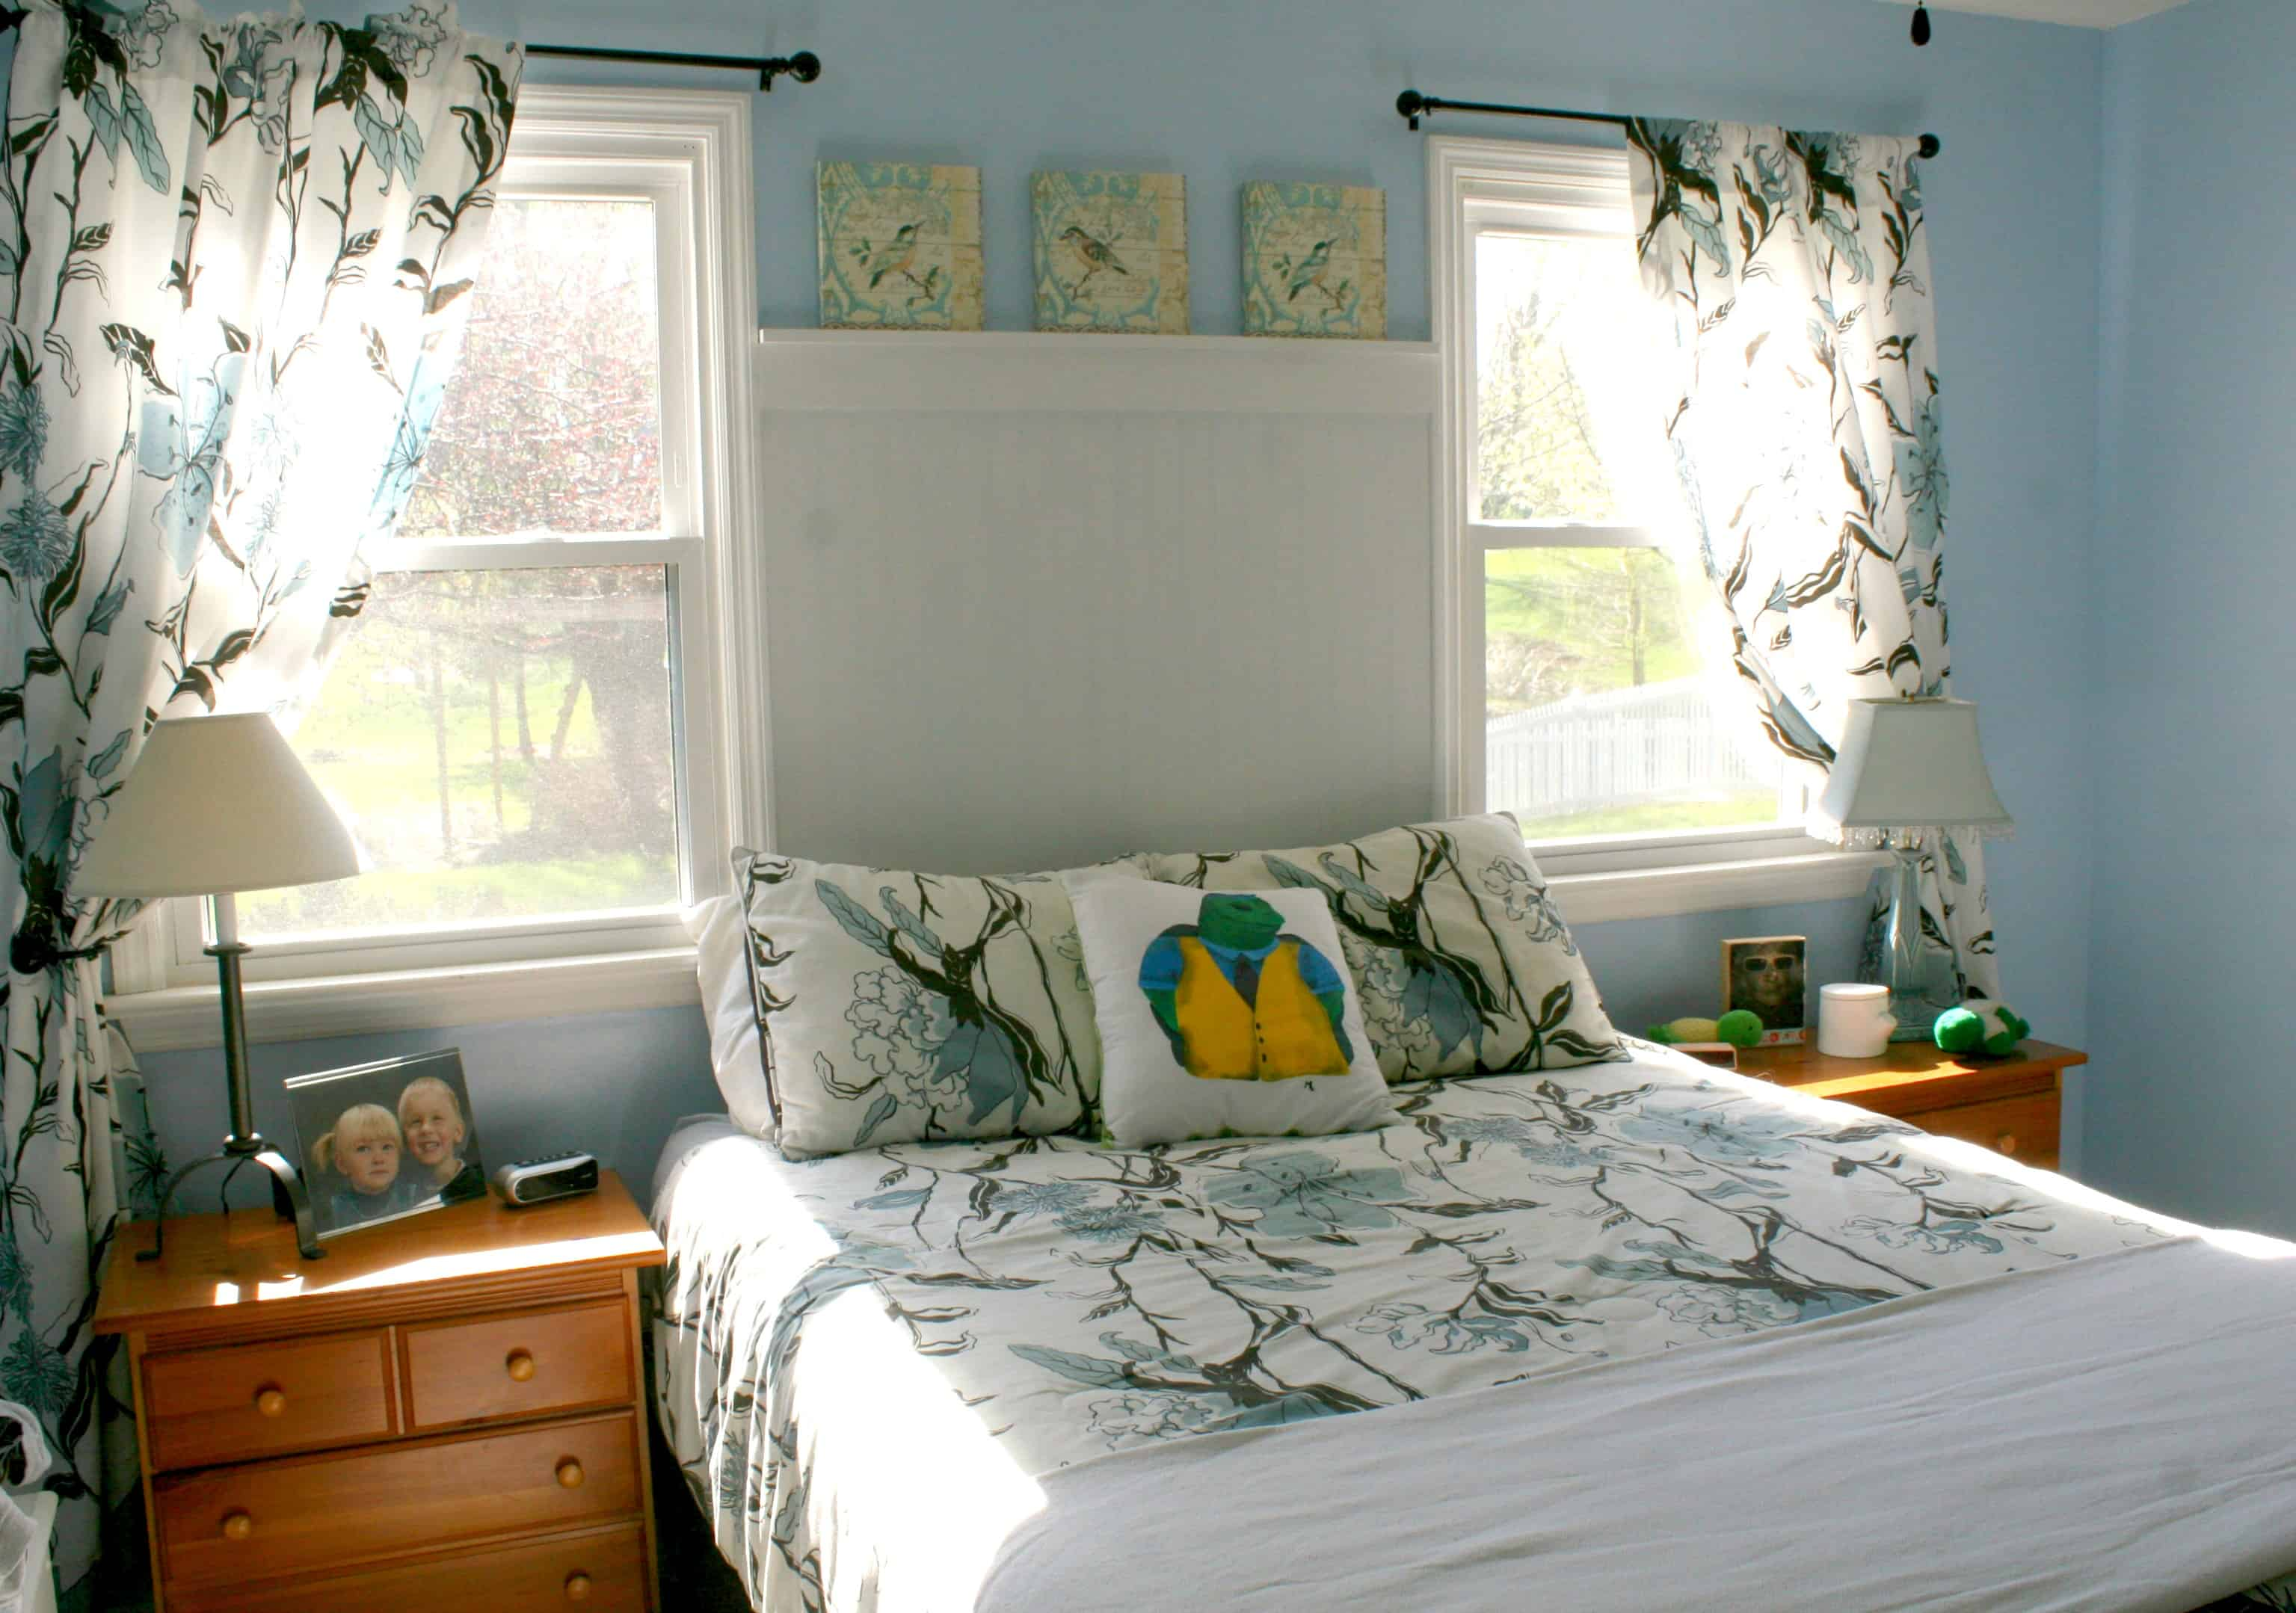 Master Bedroom Makeover Part 1  A Turtles Life for Me